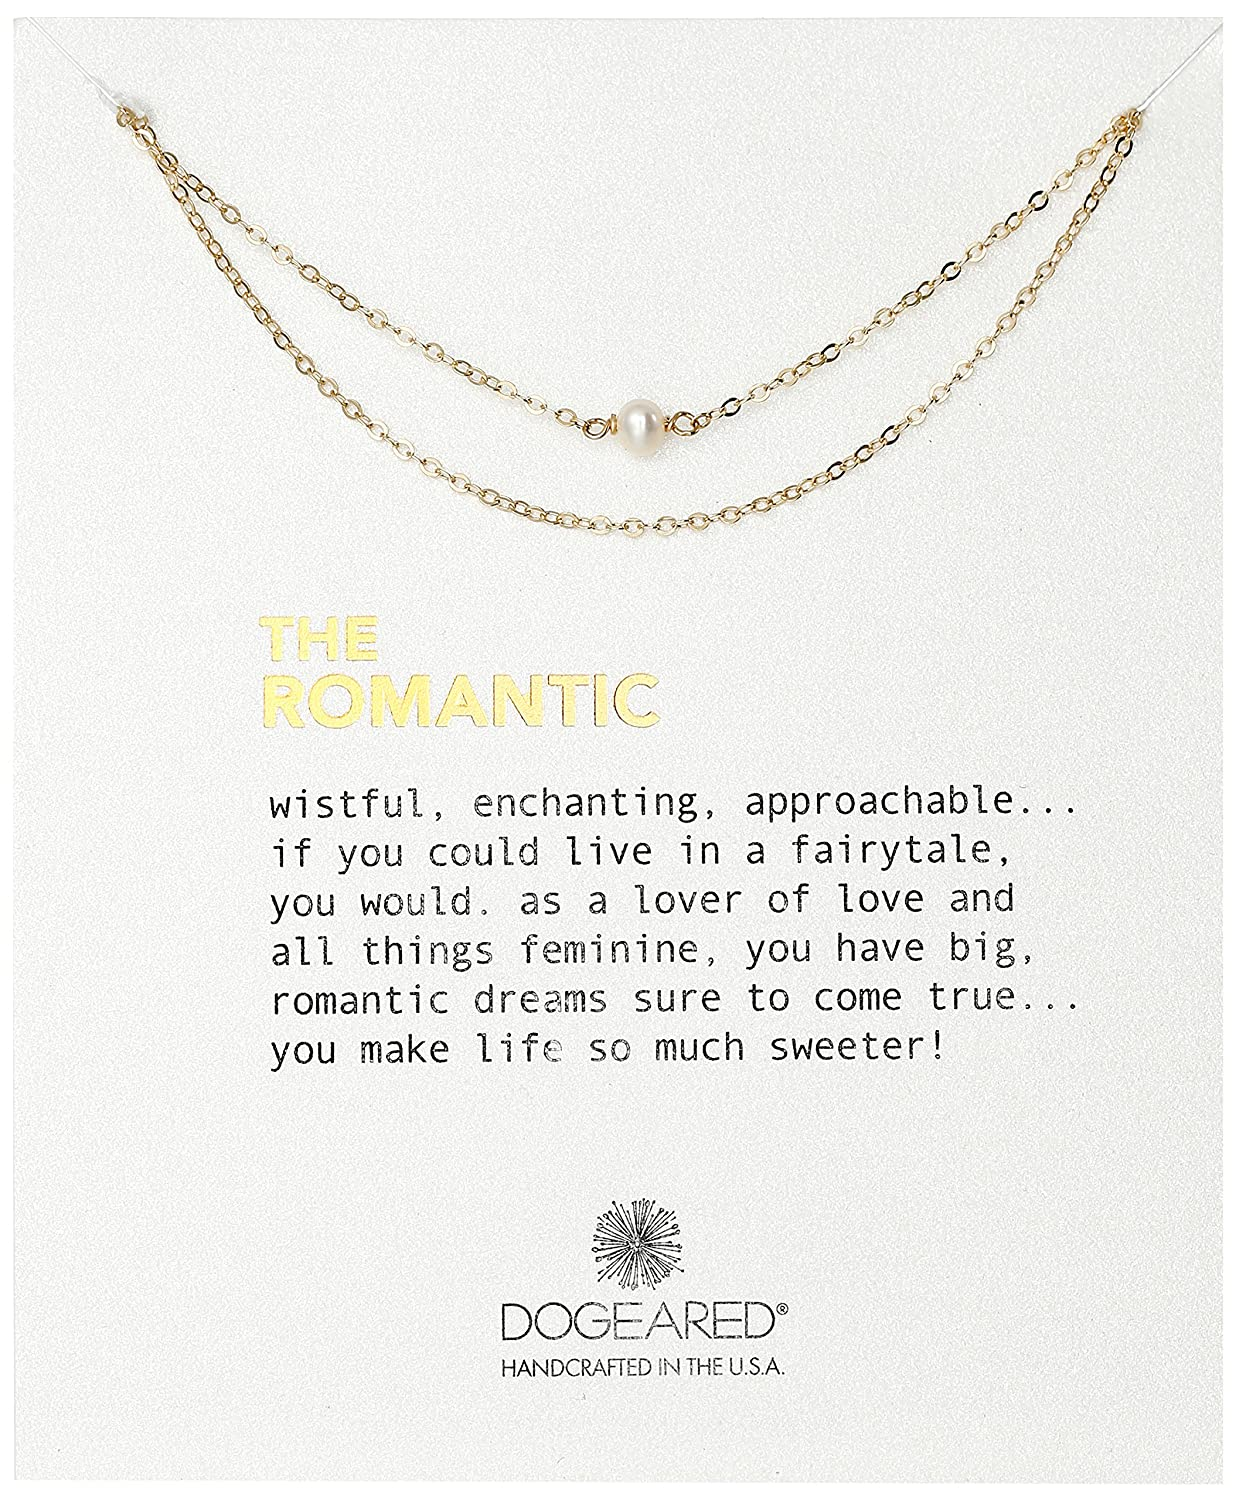 Dogeared The Romantic Potato Pearl with Double Chain Necklace, 18-Inch